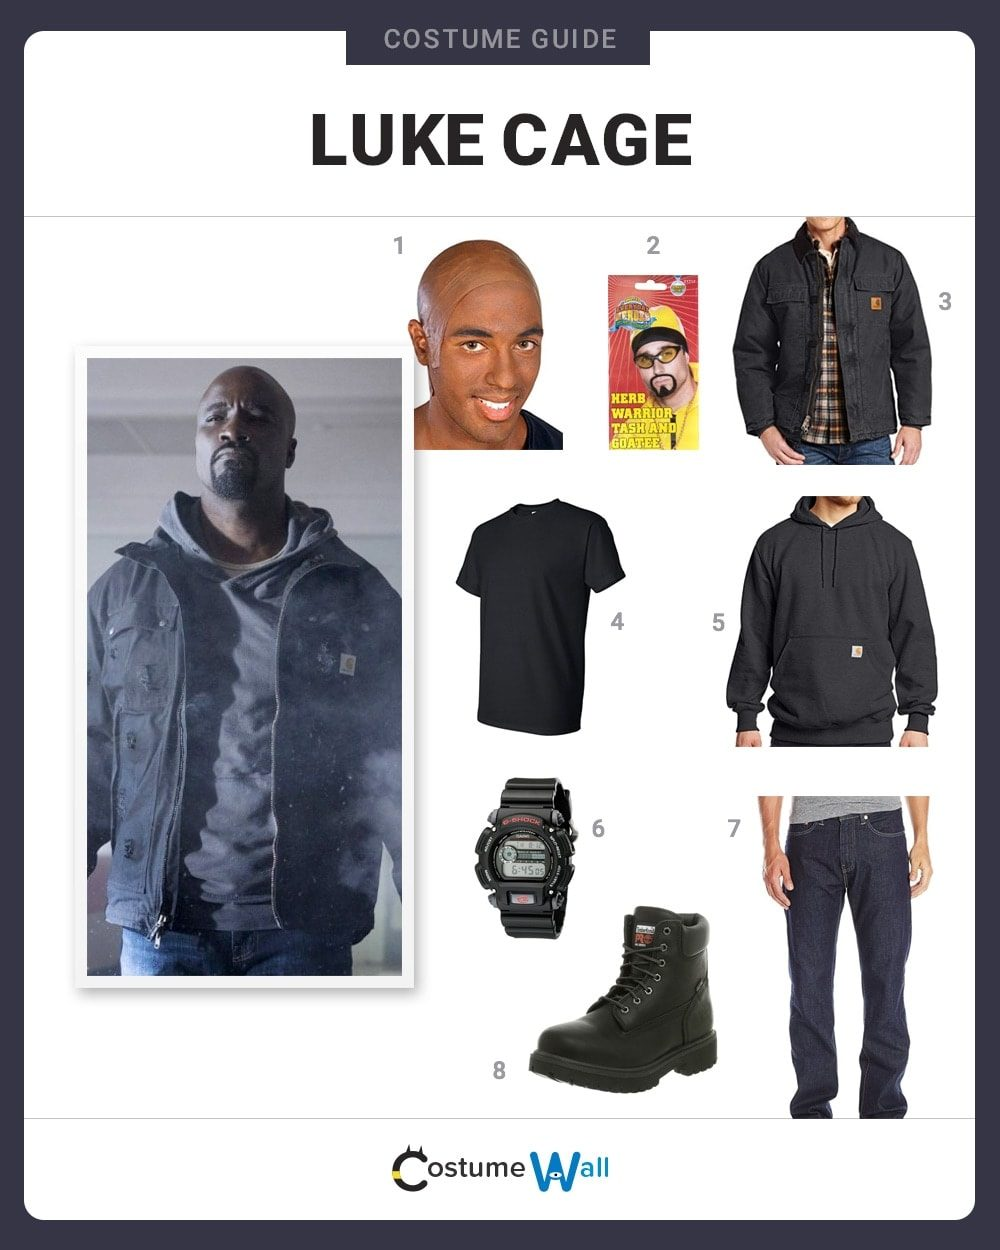 Luke Cage Costume Guide